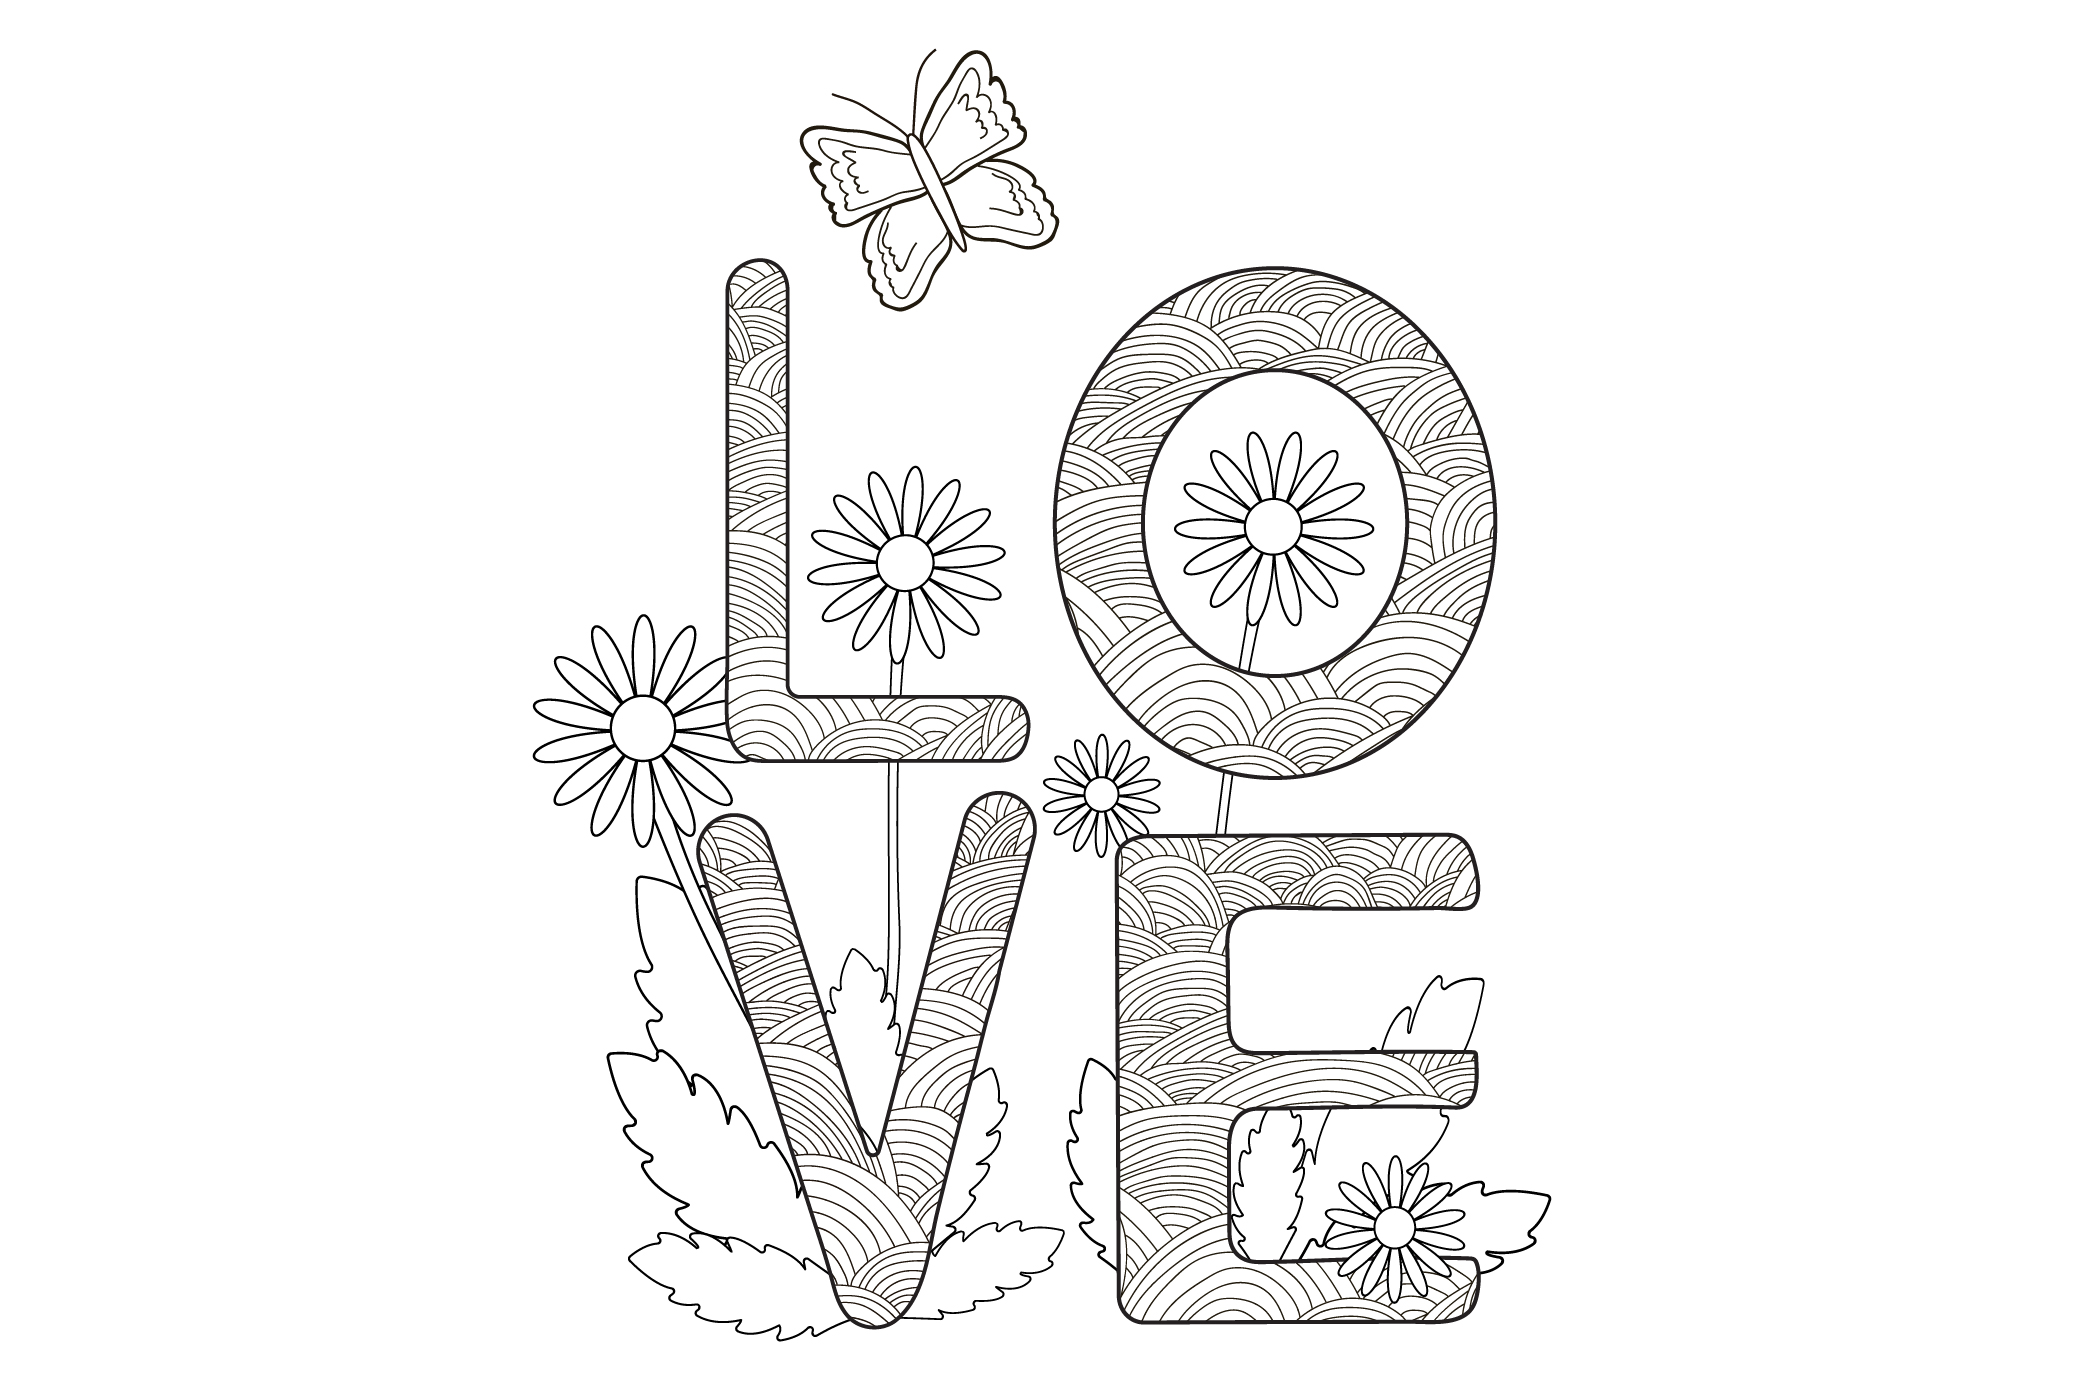 Digital coloring page. Card with word Love, flowers, butter example image 1